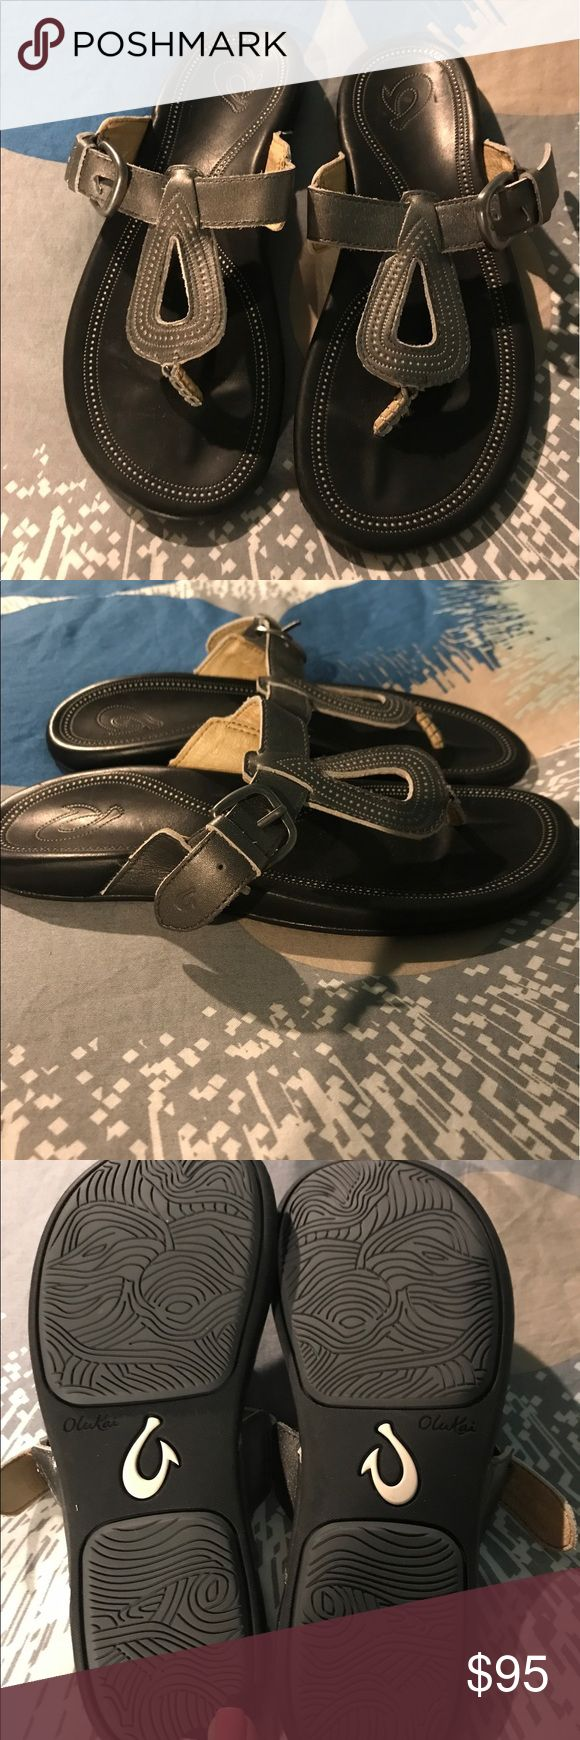 Olukai lanakila sandals women's 7 NWOT silver leather sandals. Beautiful. Women's size 7 OluKai Shoes Sandals